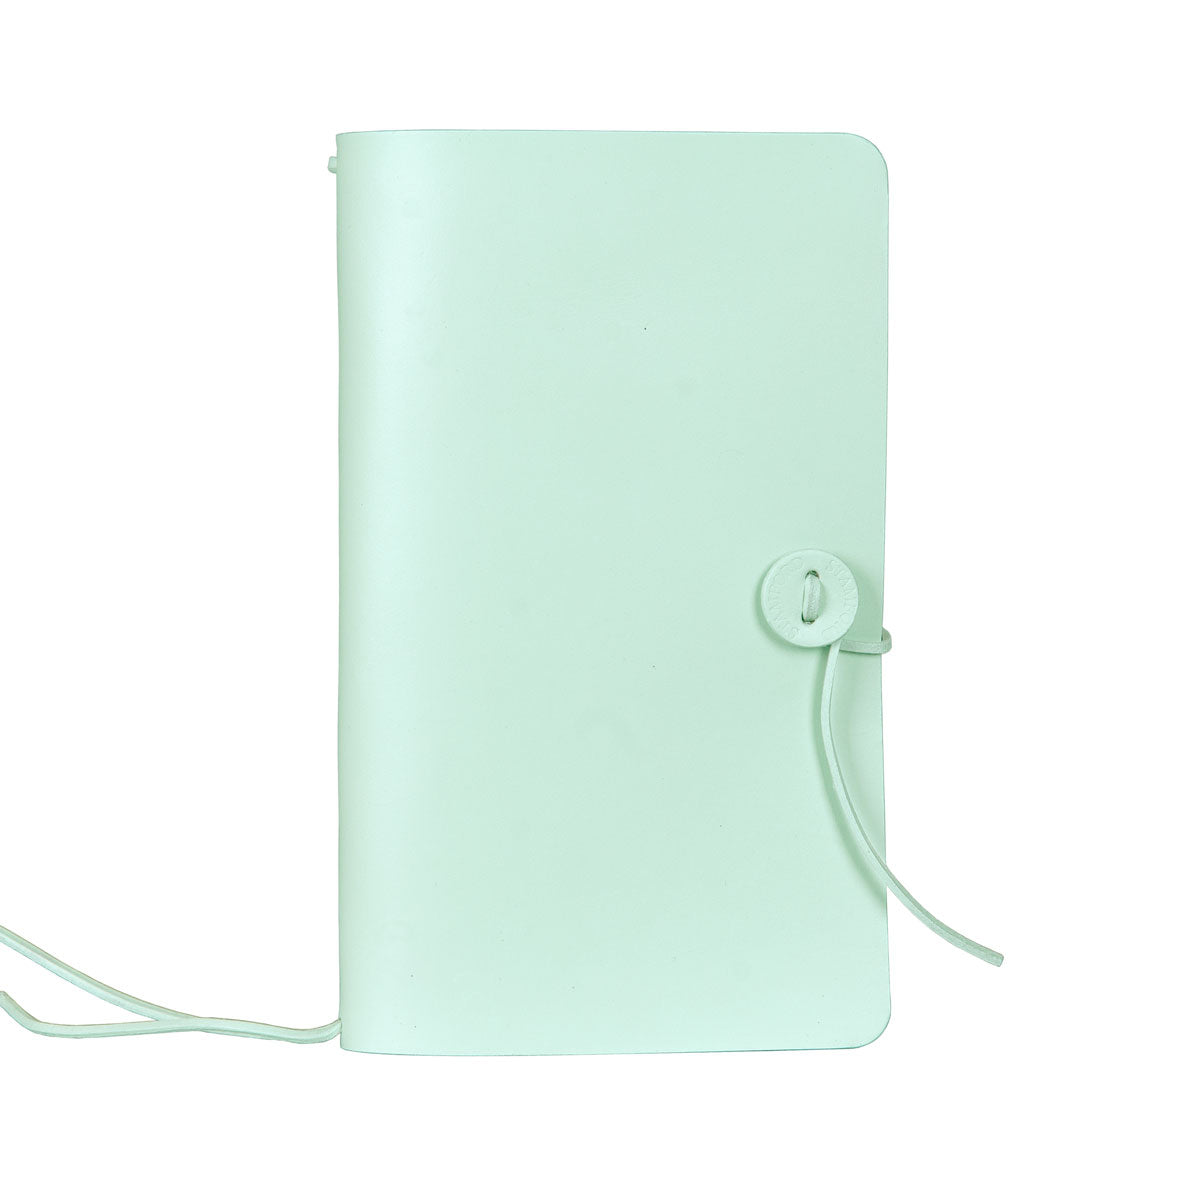 Mint refillable leather travellers journal